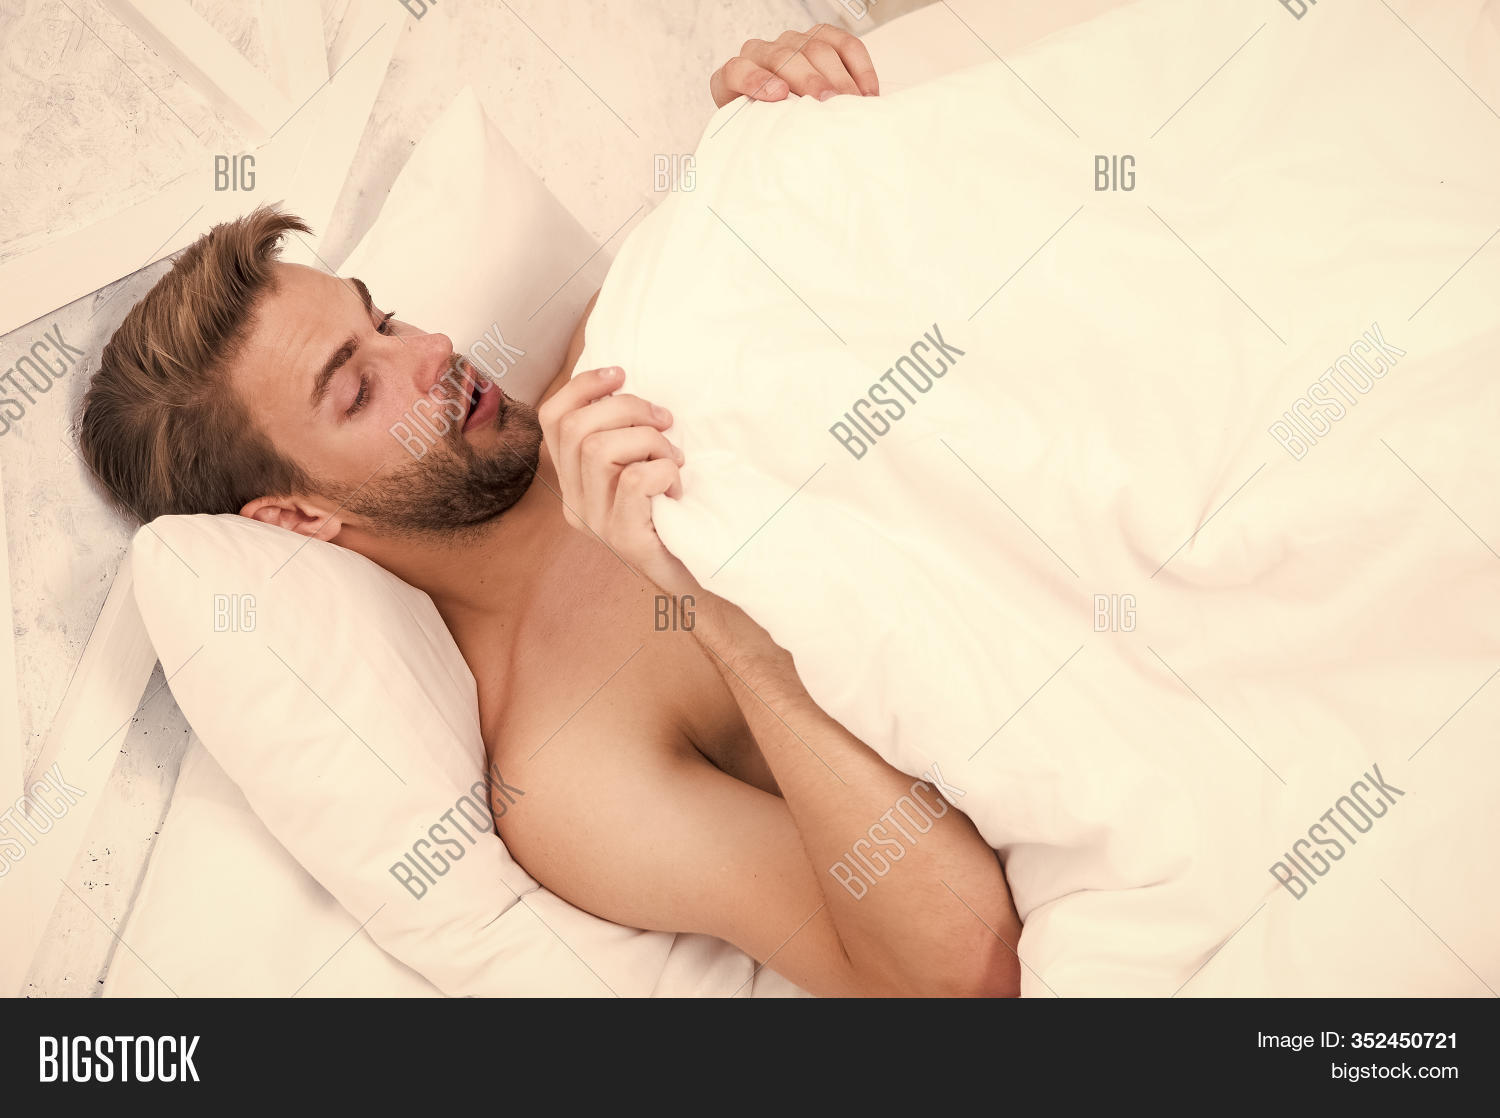 What do guys do with morning wood